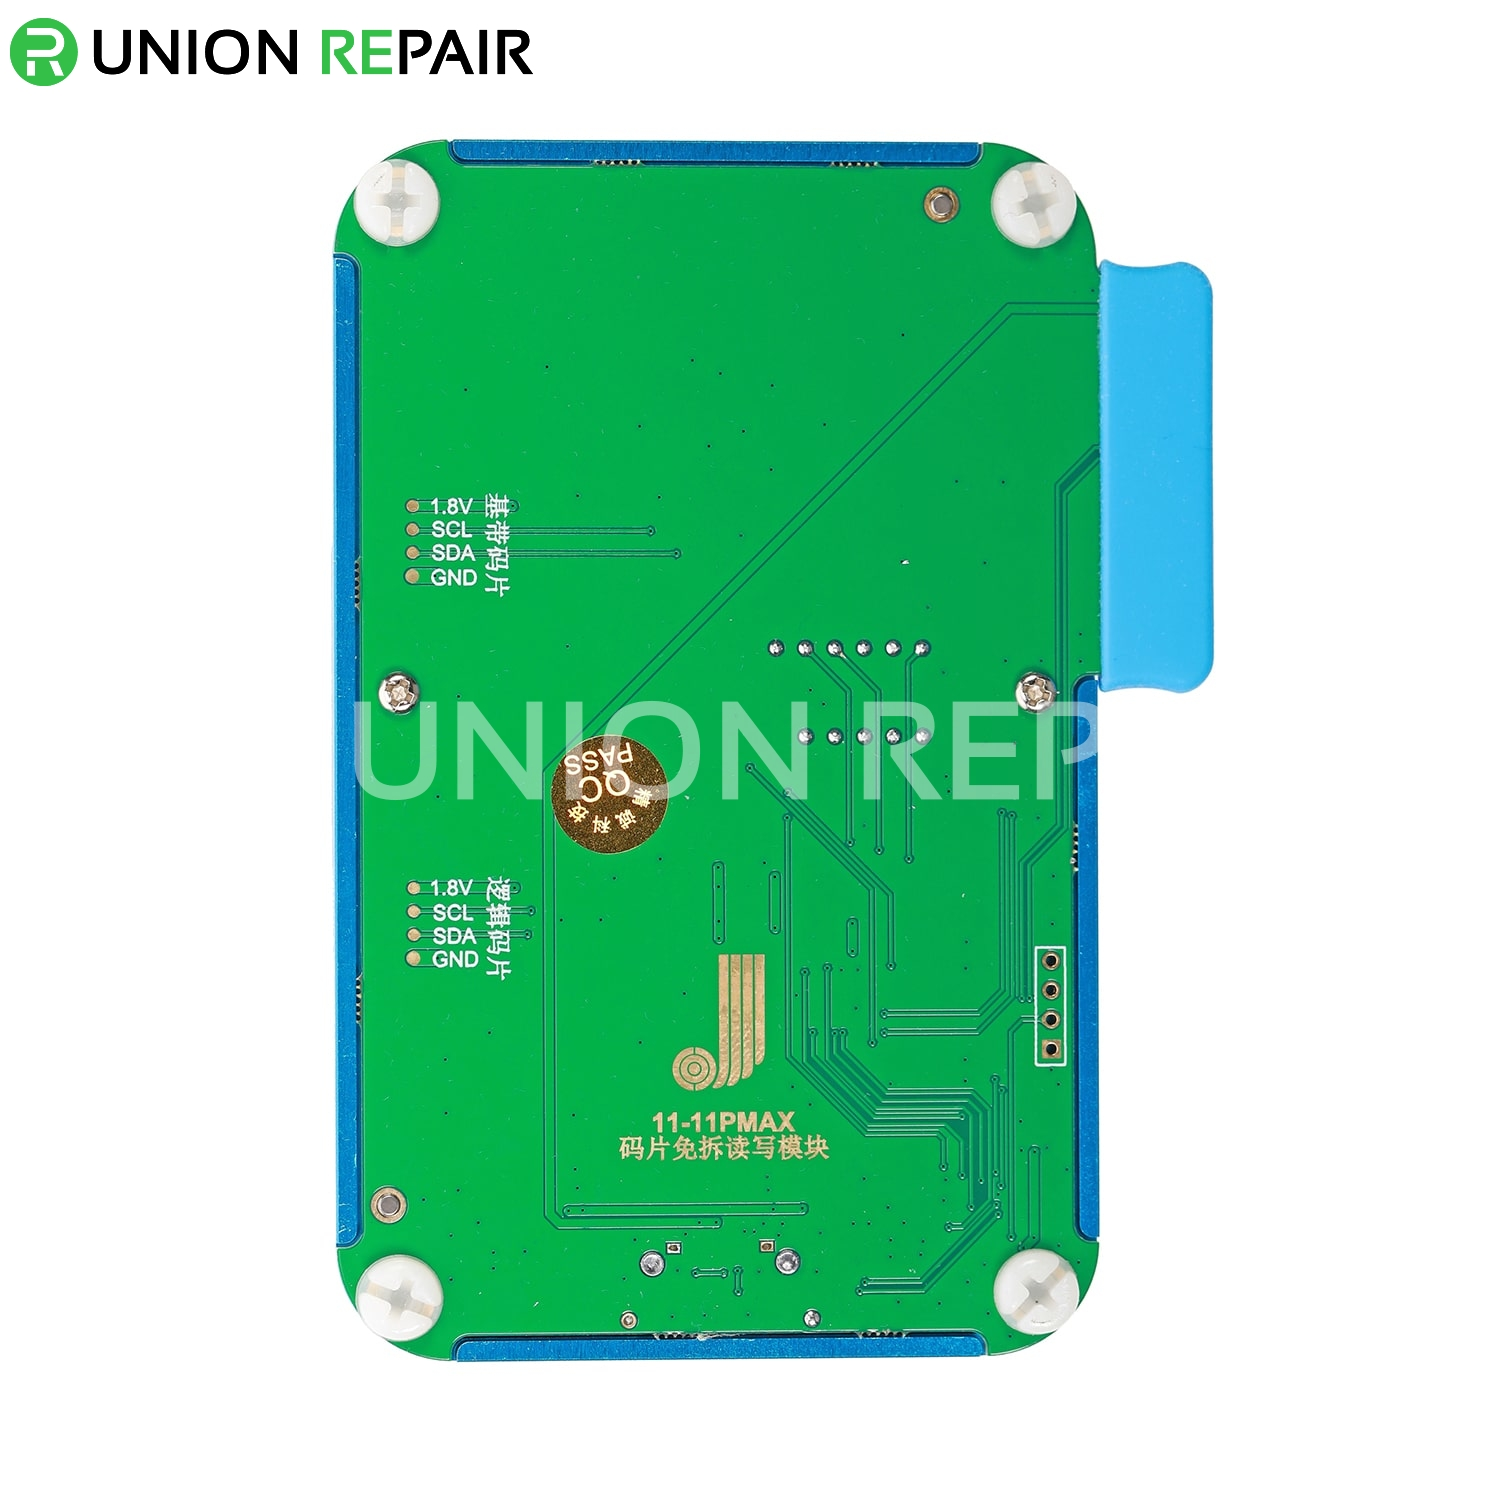 JC Module Logic Baseband EEPROM Chip Non-removal for iPhone 11-Pro Max